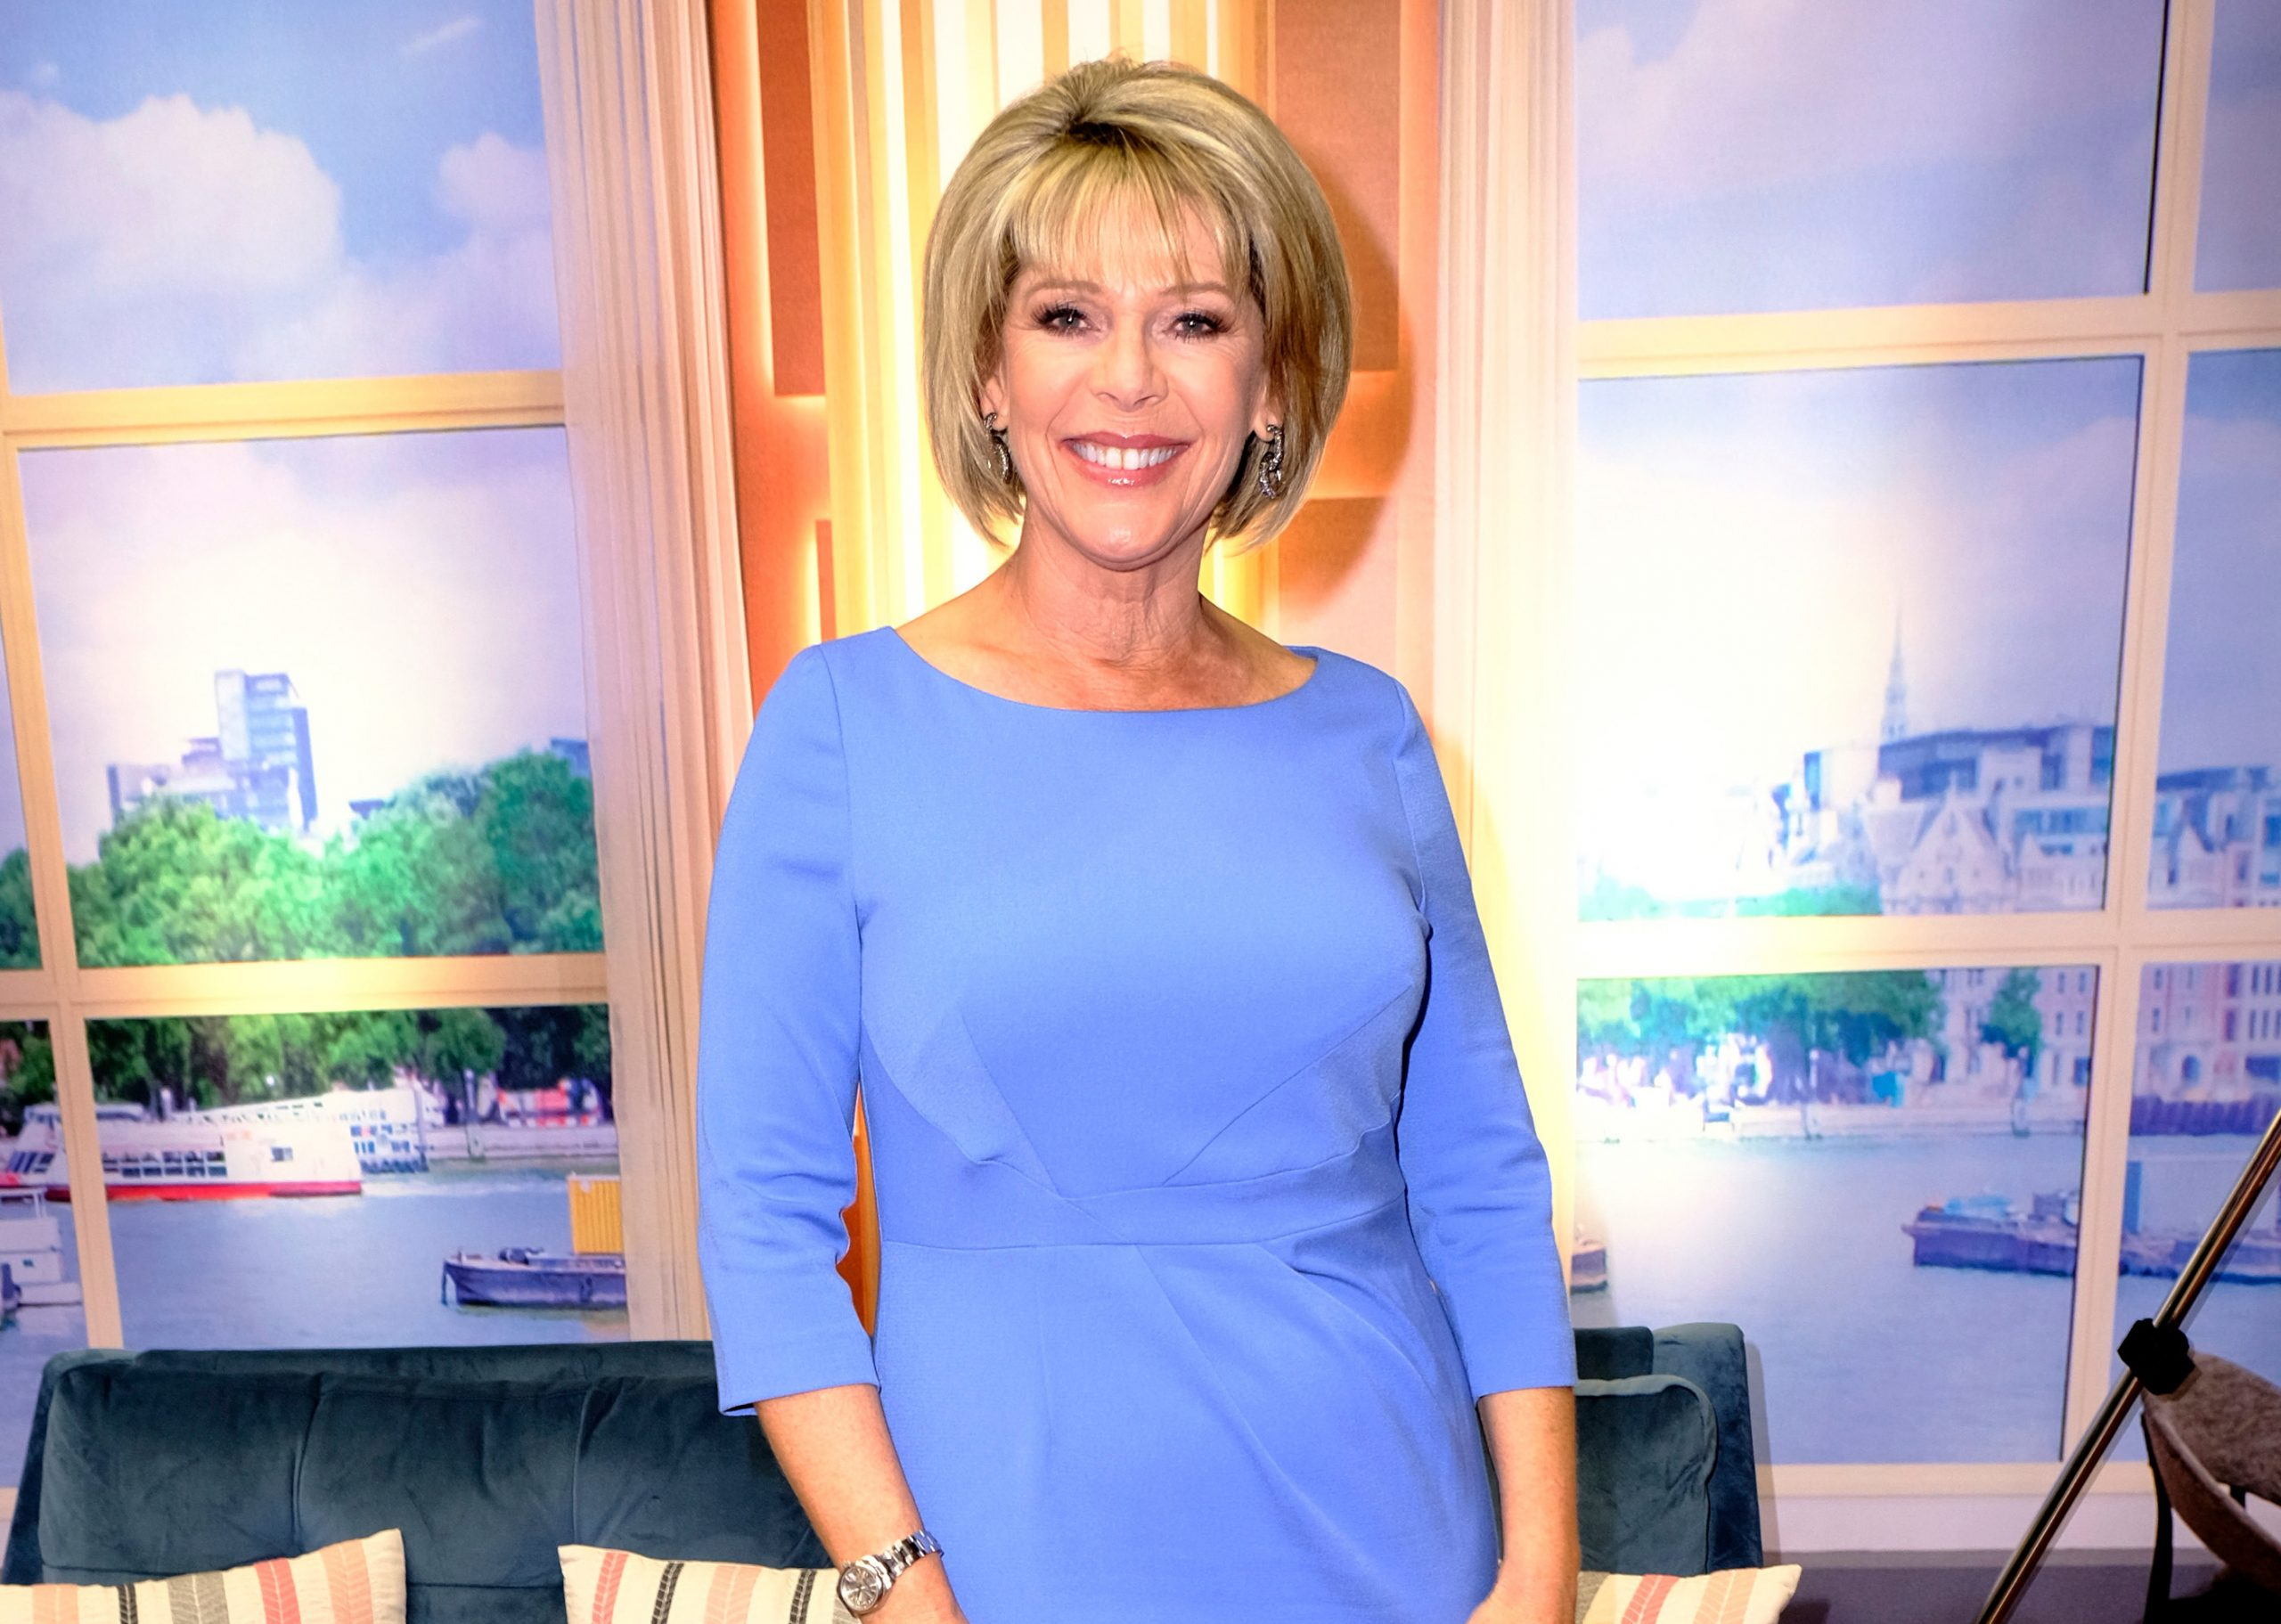 Ruth Langsford, Tu sale dress